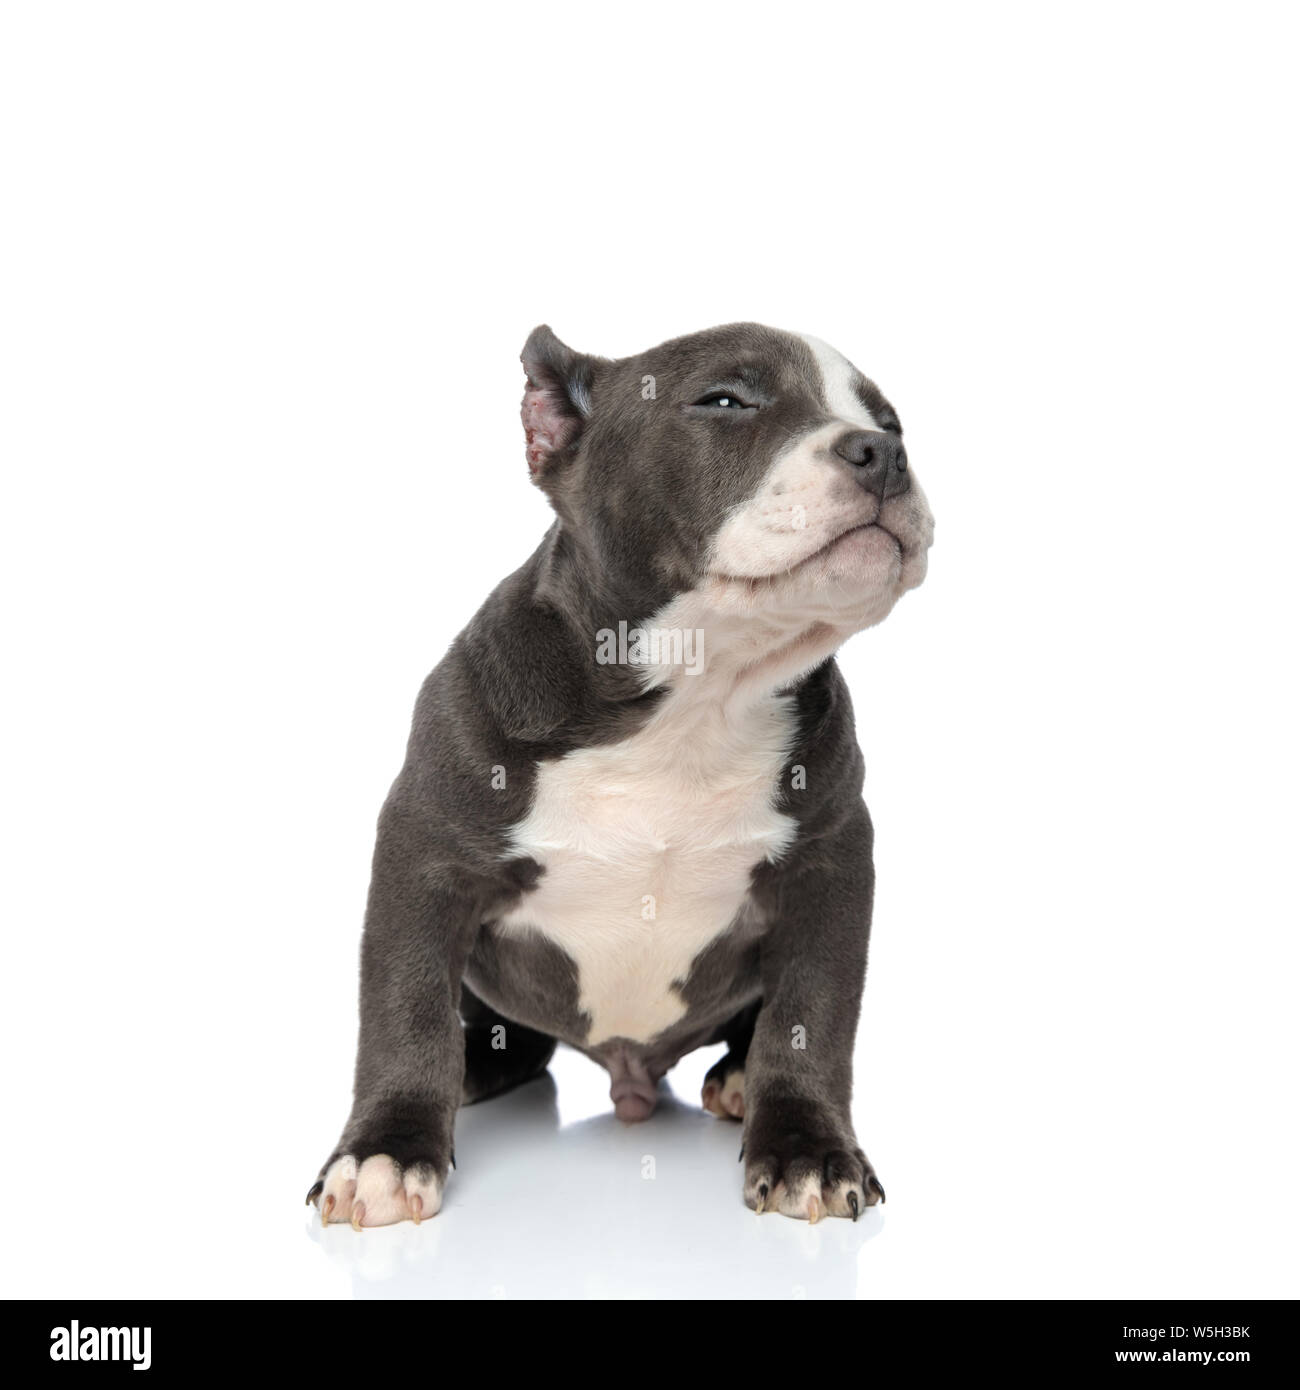 Concerned American Bully puppy looking and frowning to the